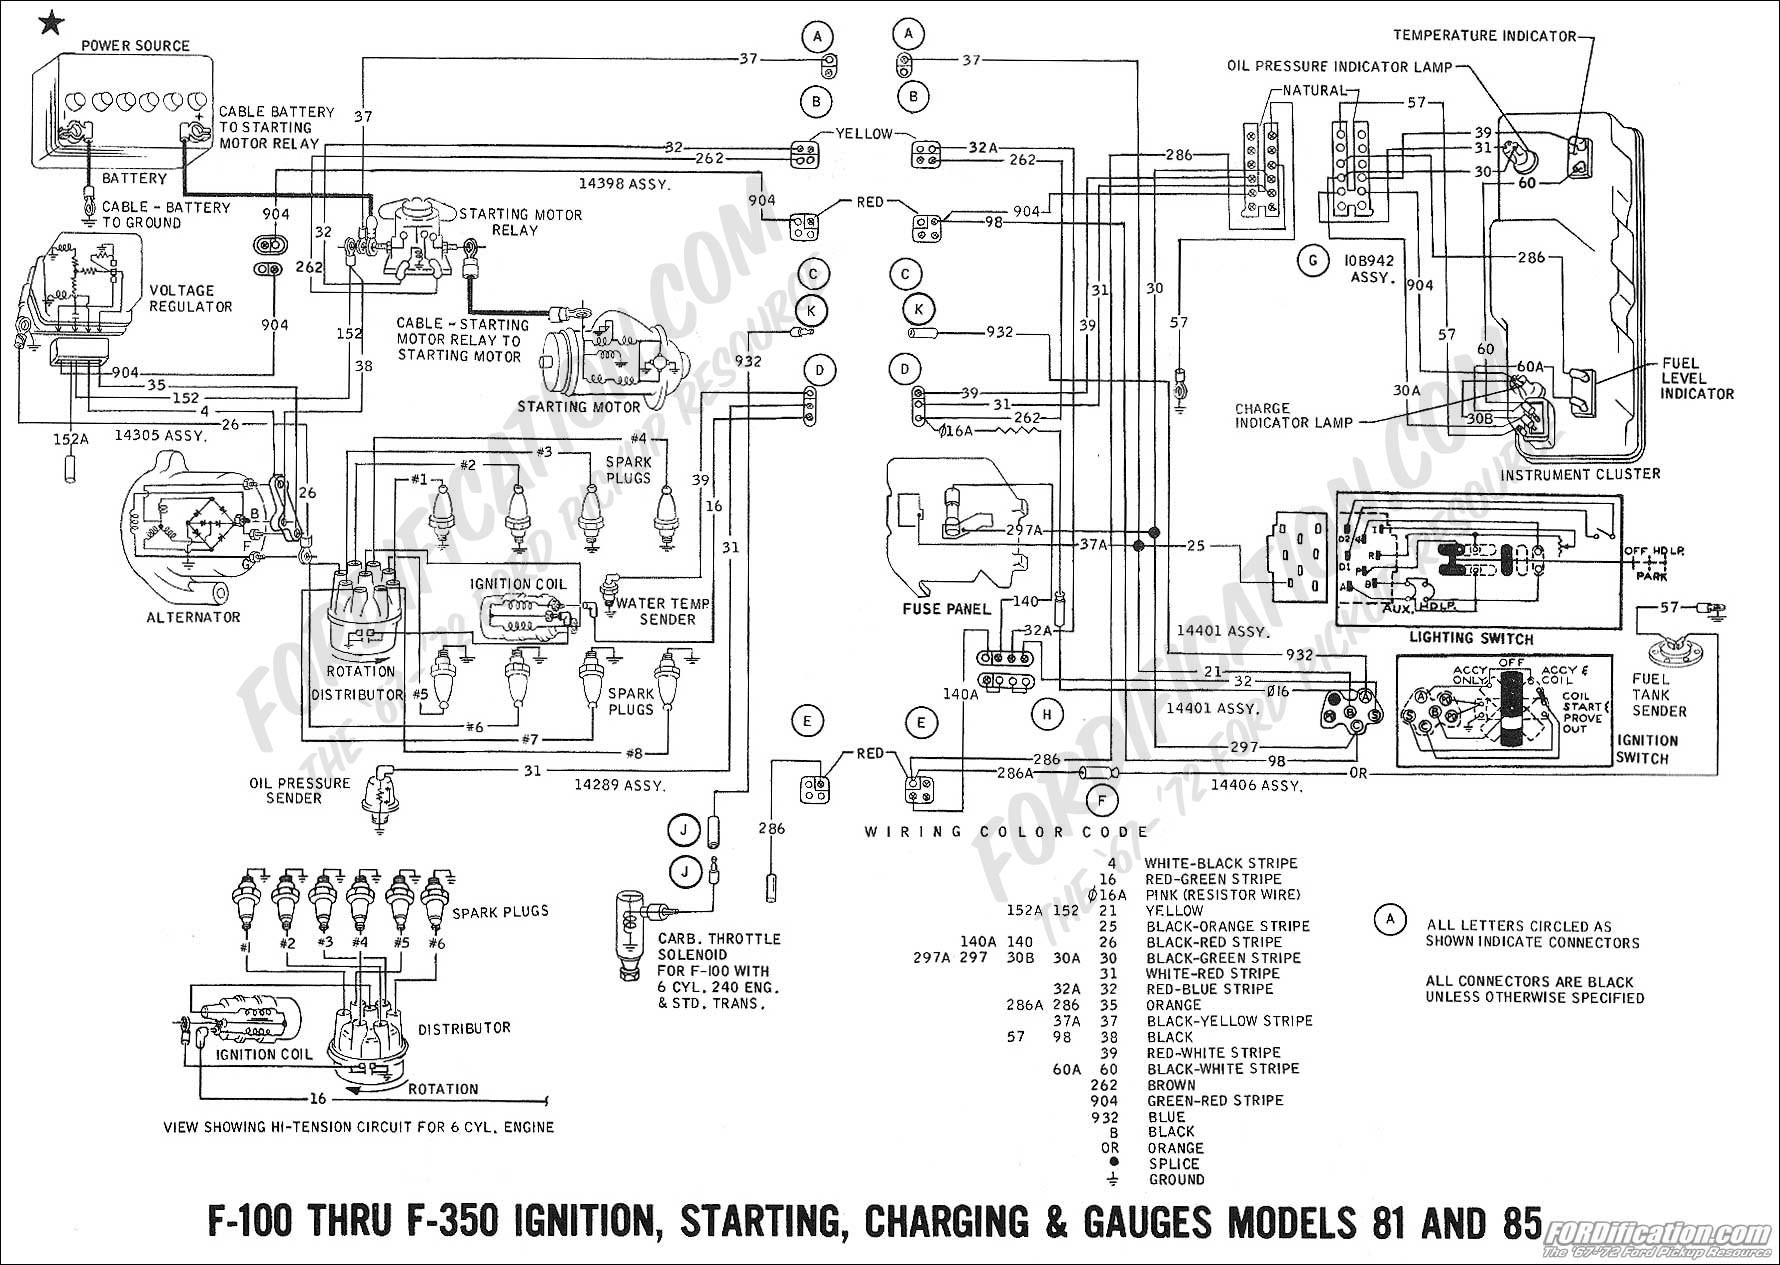 wiring diagram for a 1972 ford amfm radio free vehicle wiring rh addone tw